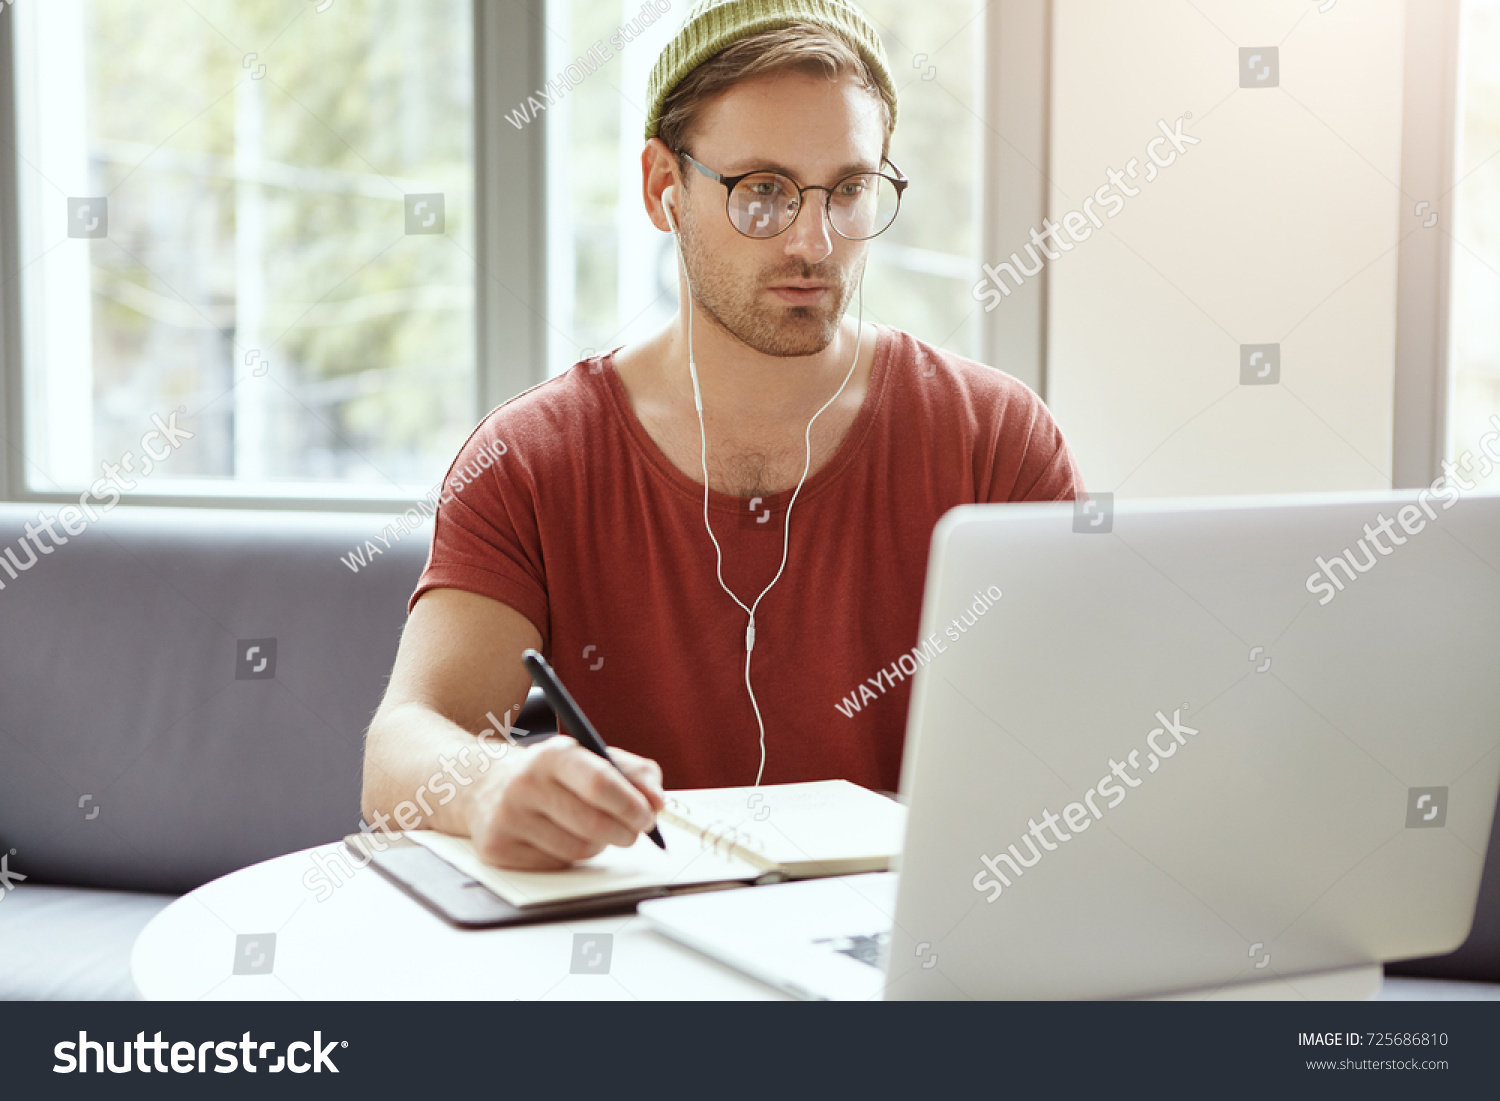 Concentrated bearded young European hipster in stylish round glasses and green hat looking at laptop screen and making notes in copybook while learning online, watching webinar using earplugs #725686810